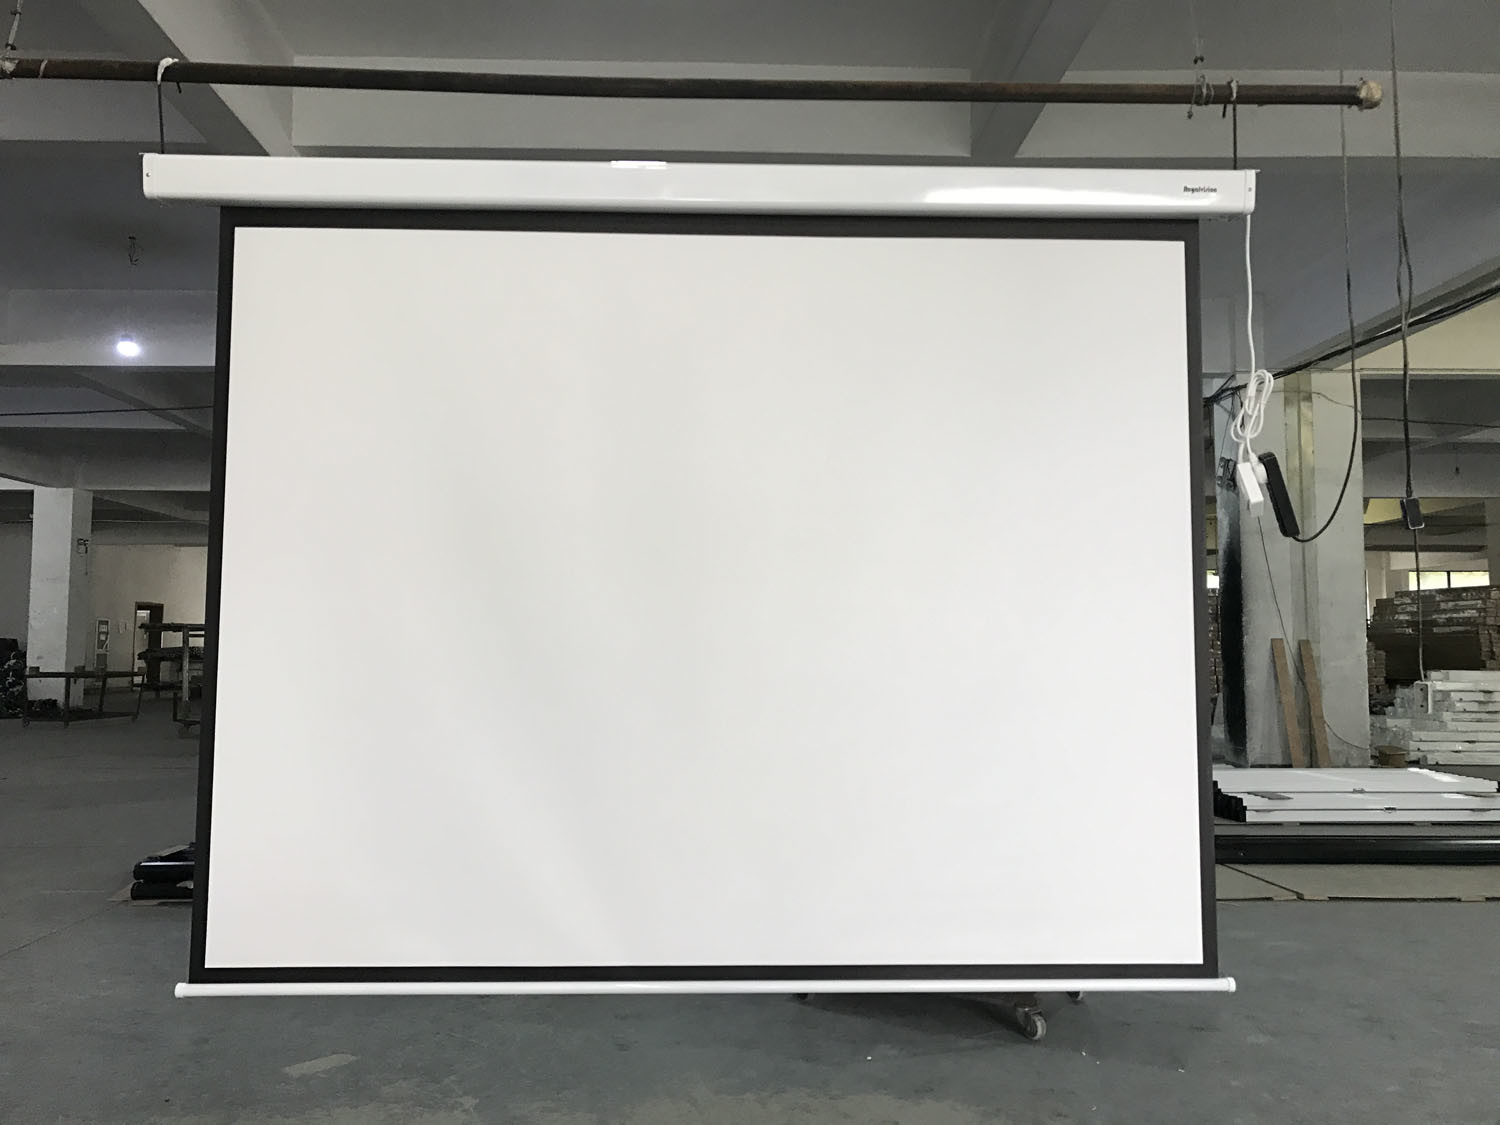 Electric Projector Screen Automatic Projector Screen Wall Mounted Screen